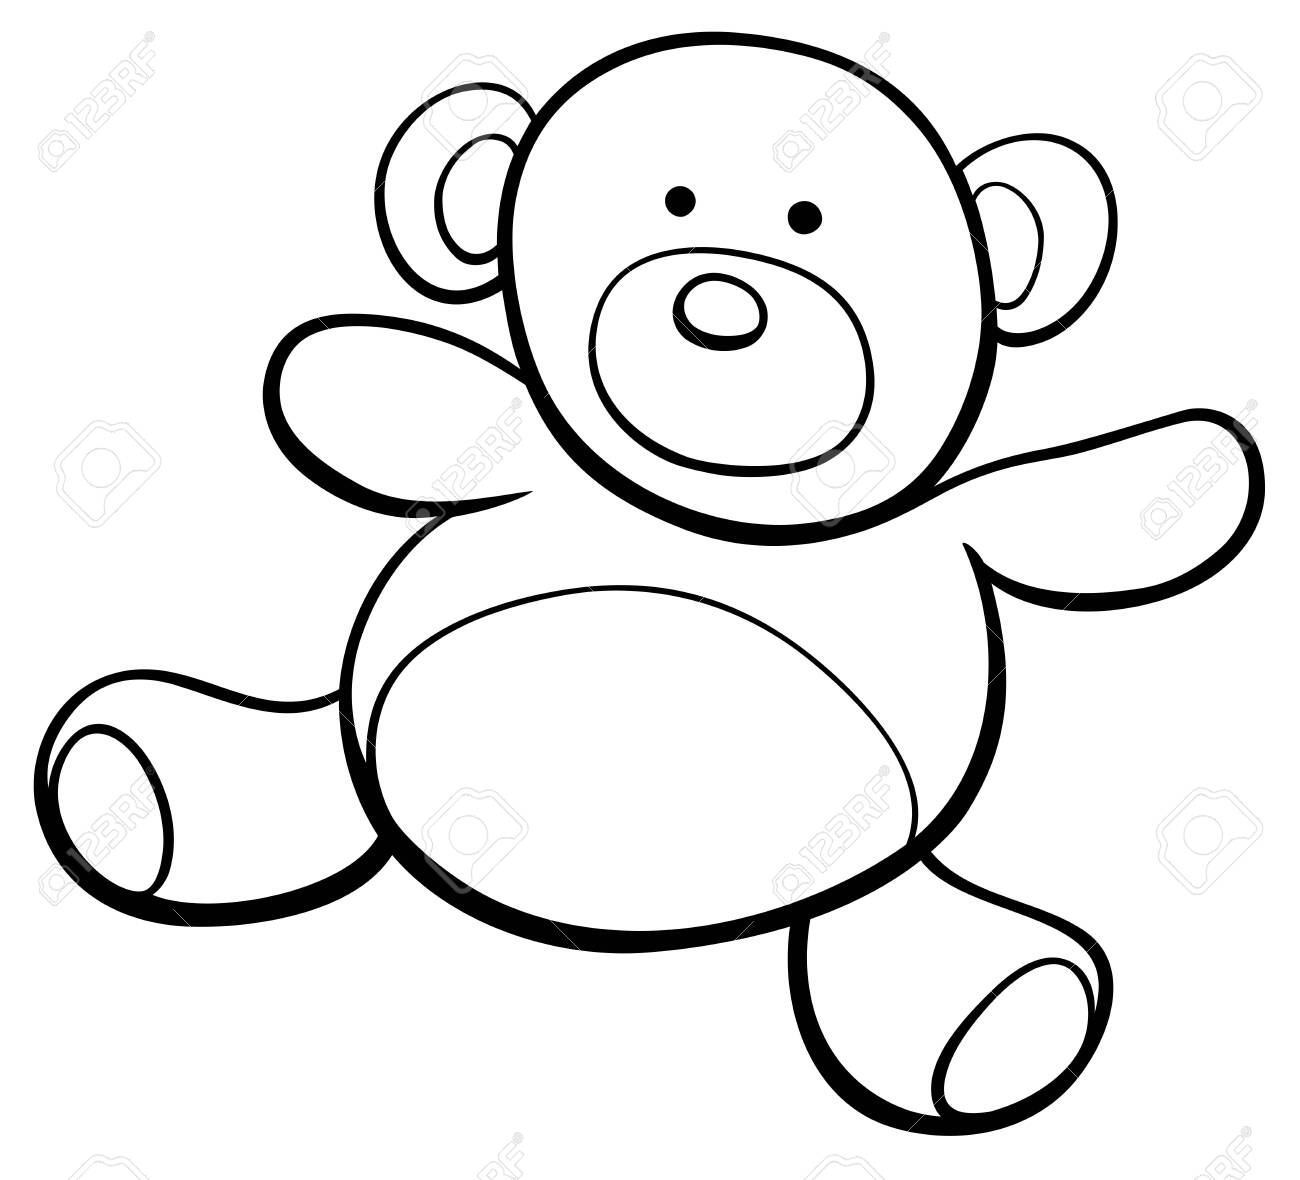 Black and White Cartoon Illustration of Teddy Bear Toy Clip Art Coloring Book - 121822541